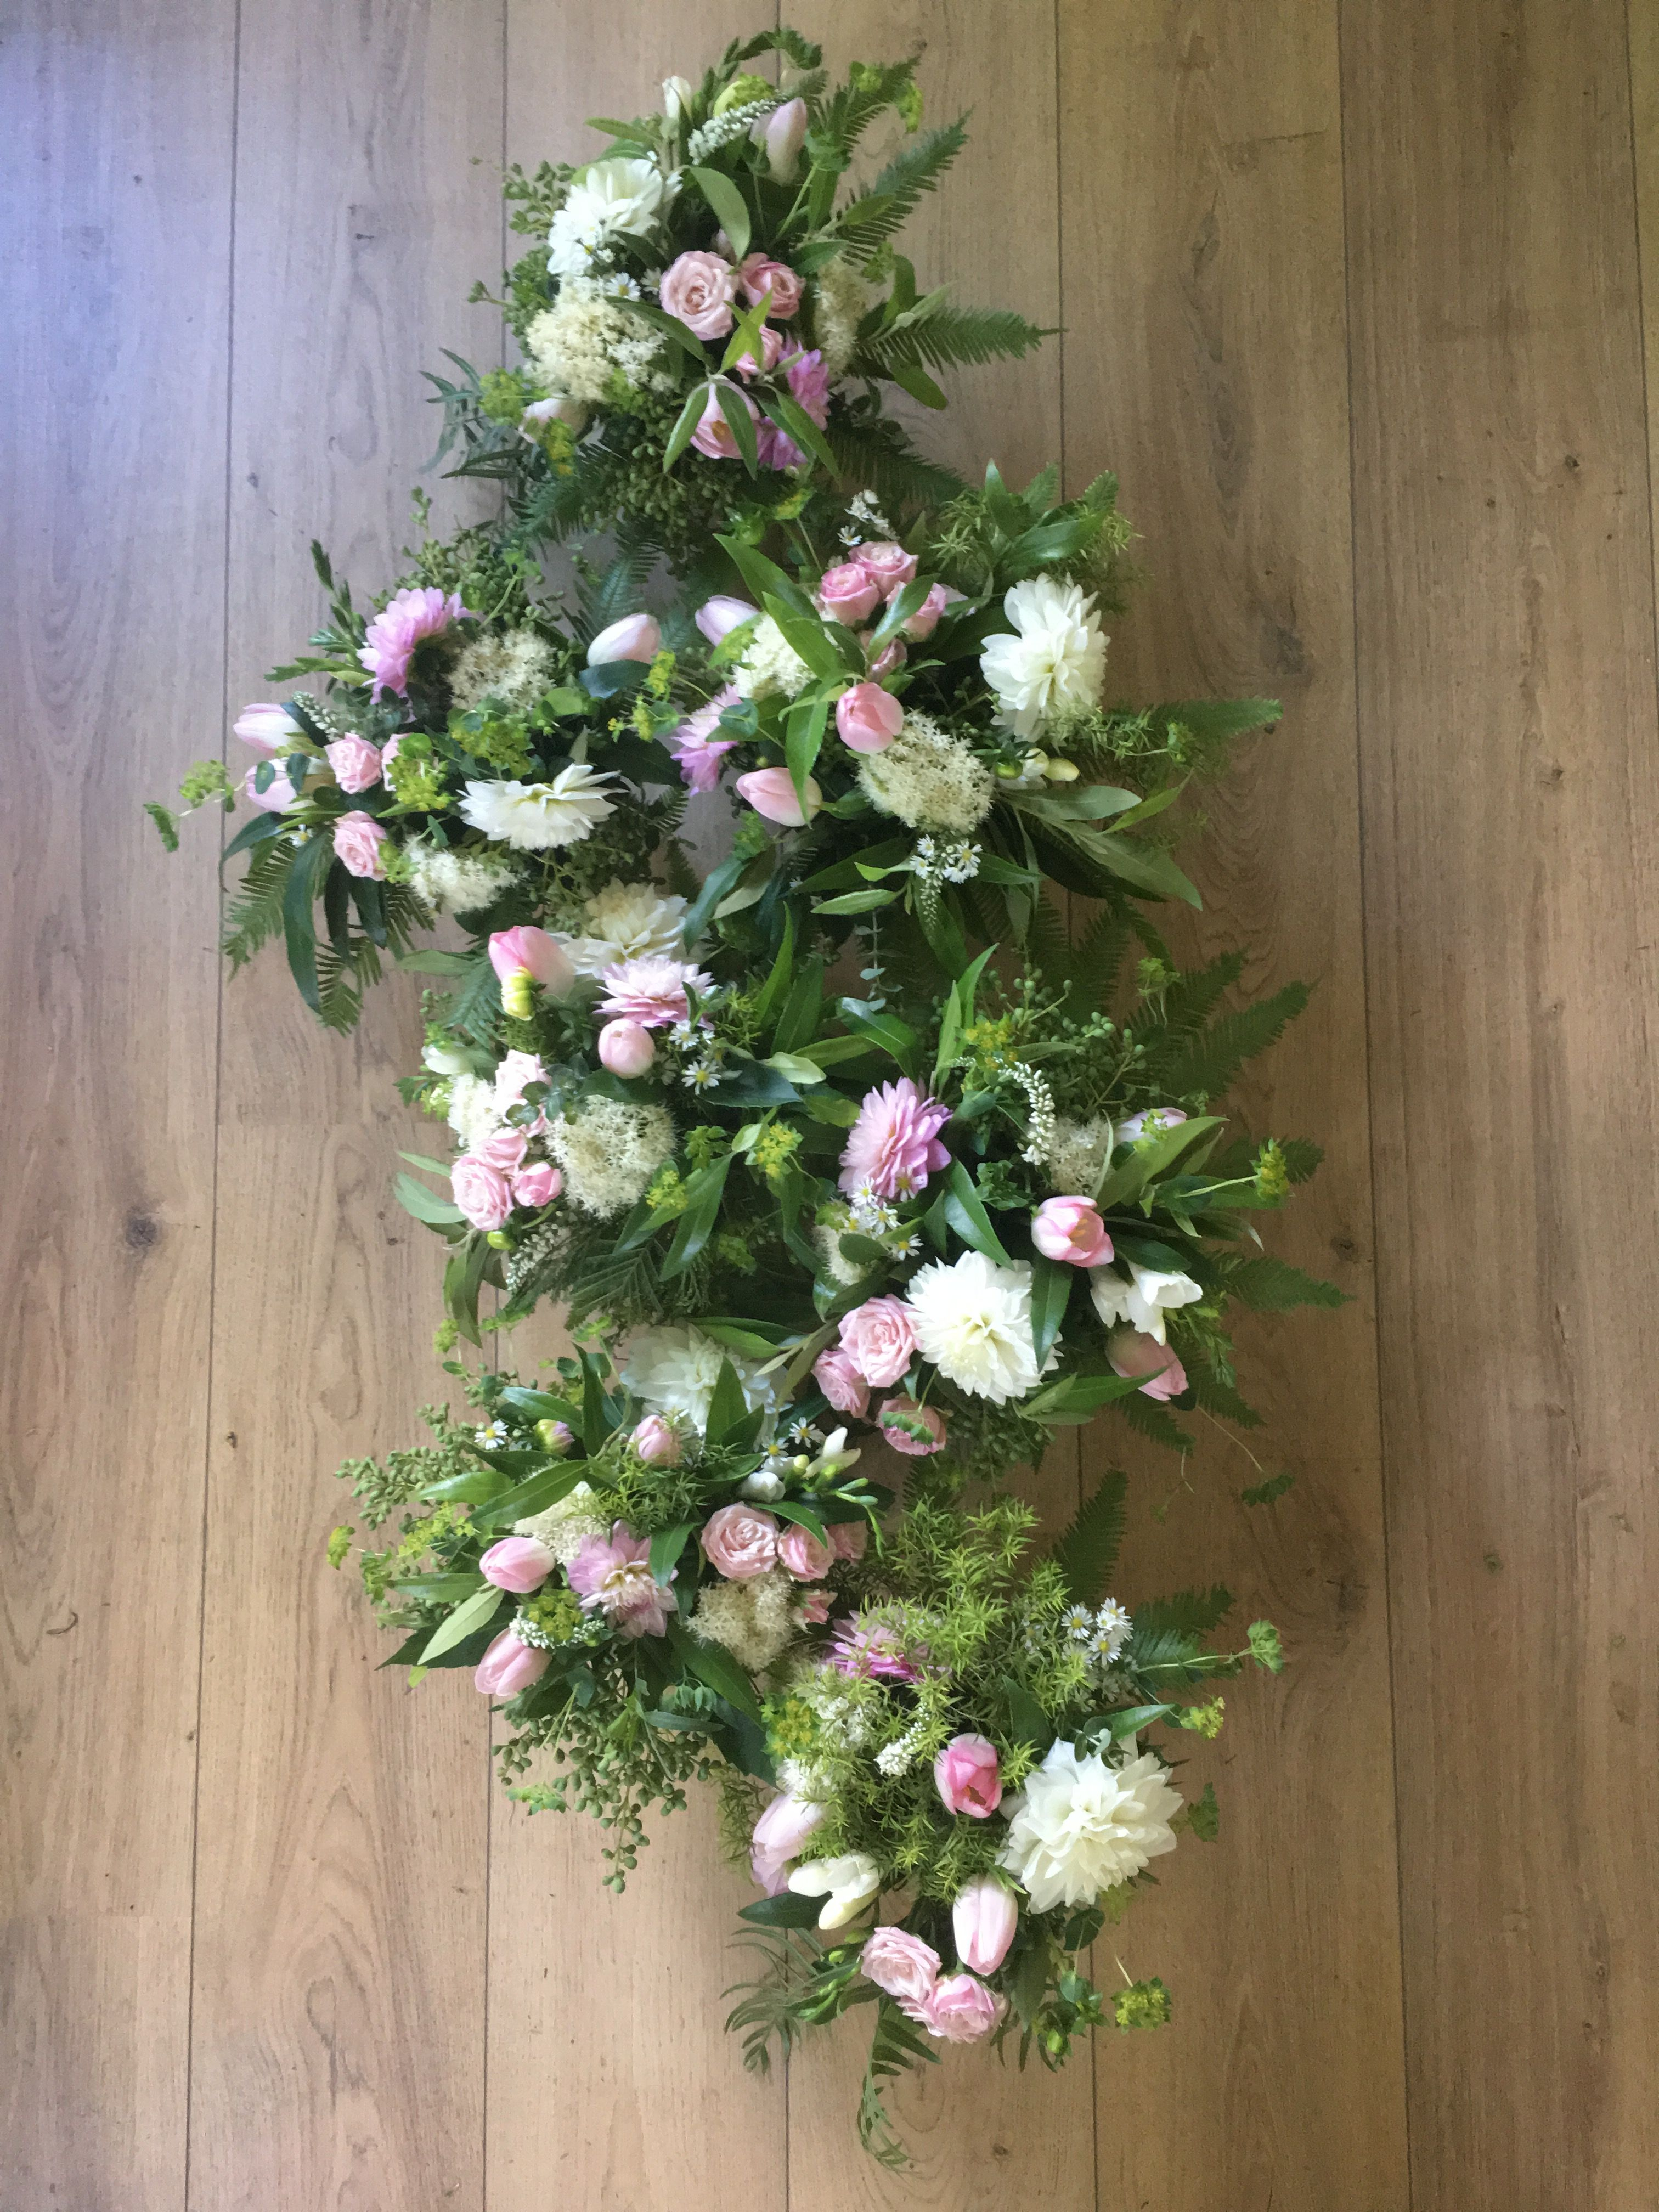 Table flowers for your birthday party delivered by le sans souci table flowers for your birthday party delivered by le sans souci flowers izmirmasajfo